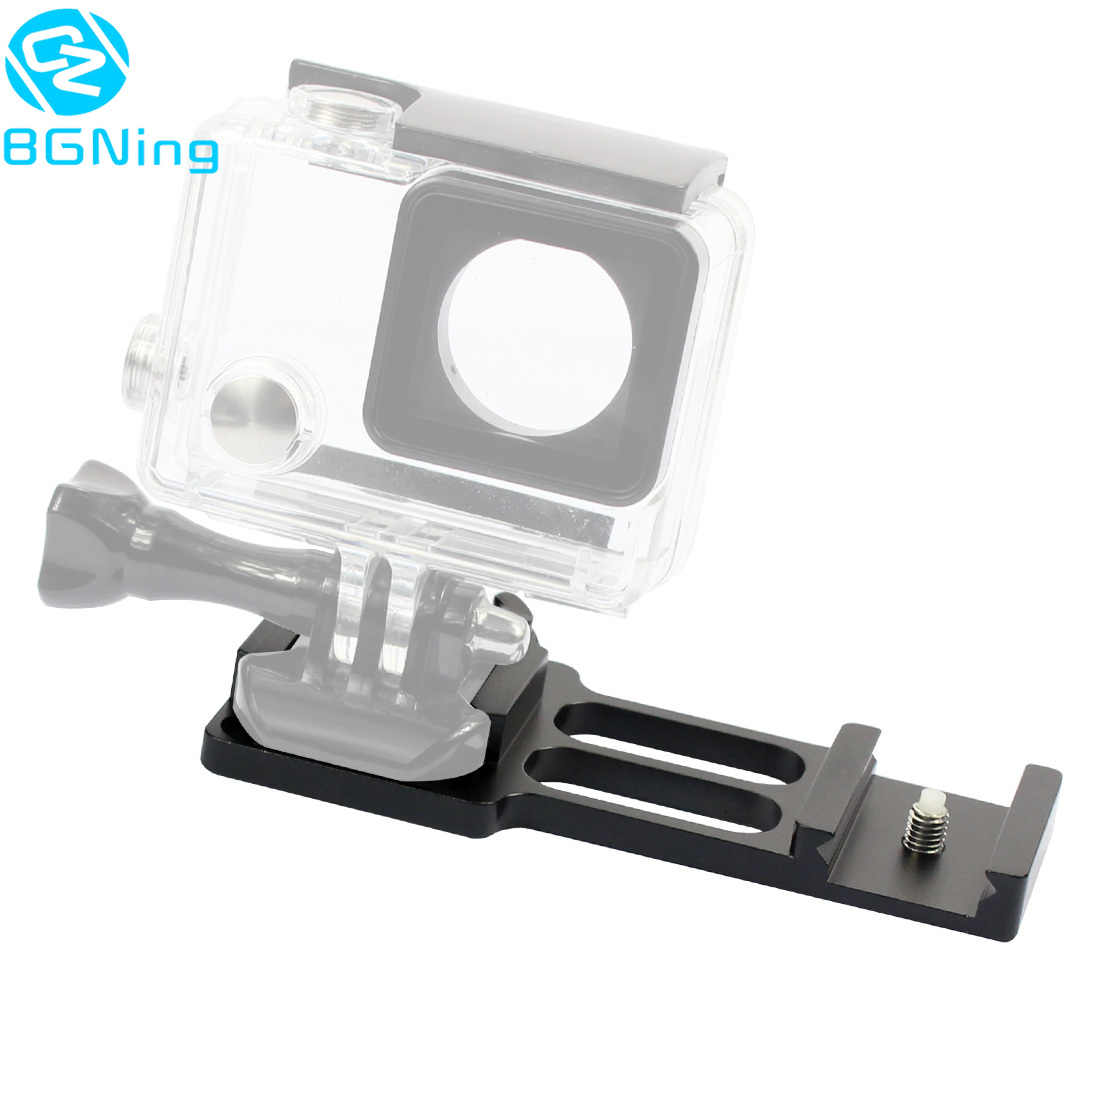 XT-XINTE New CNC Aluminum 20mm Mini Rail Mount Compatible for GoPro Hero 2 Camera Accessories Black Color Optional Parts SS06669